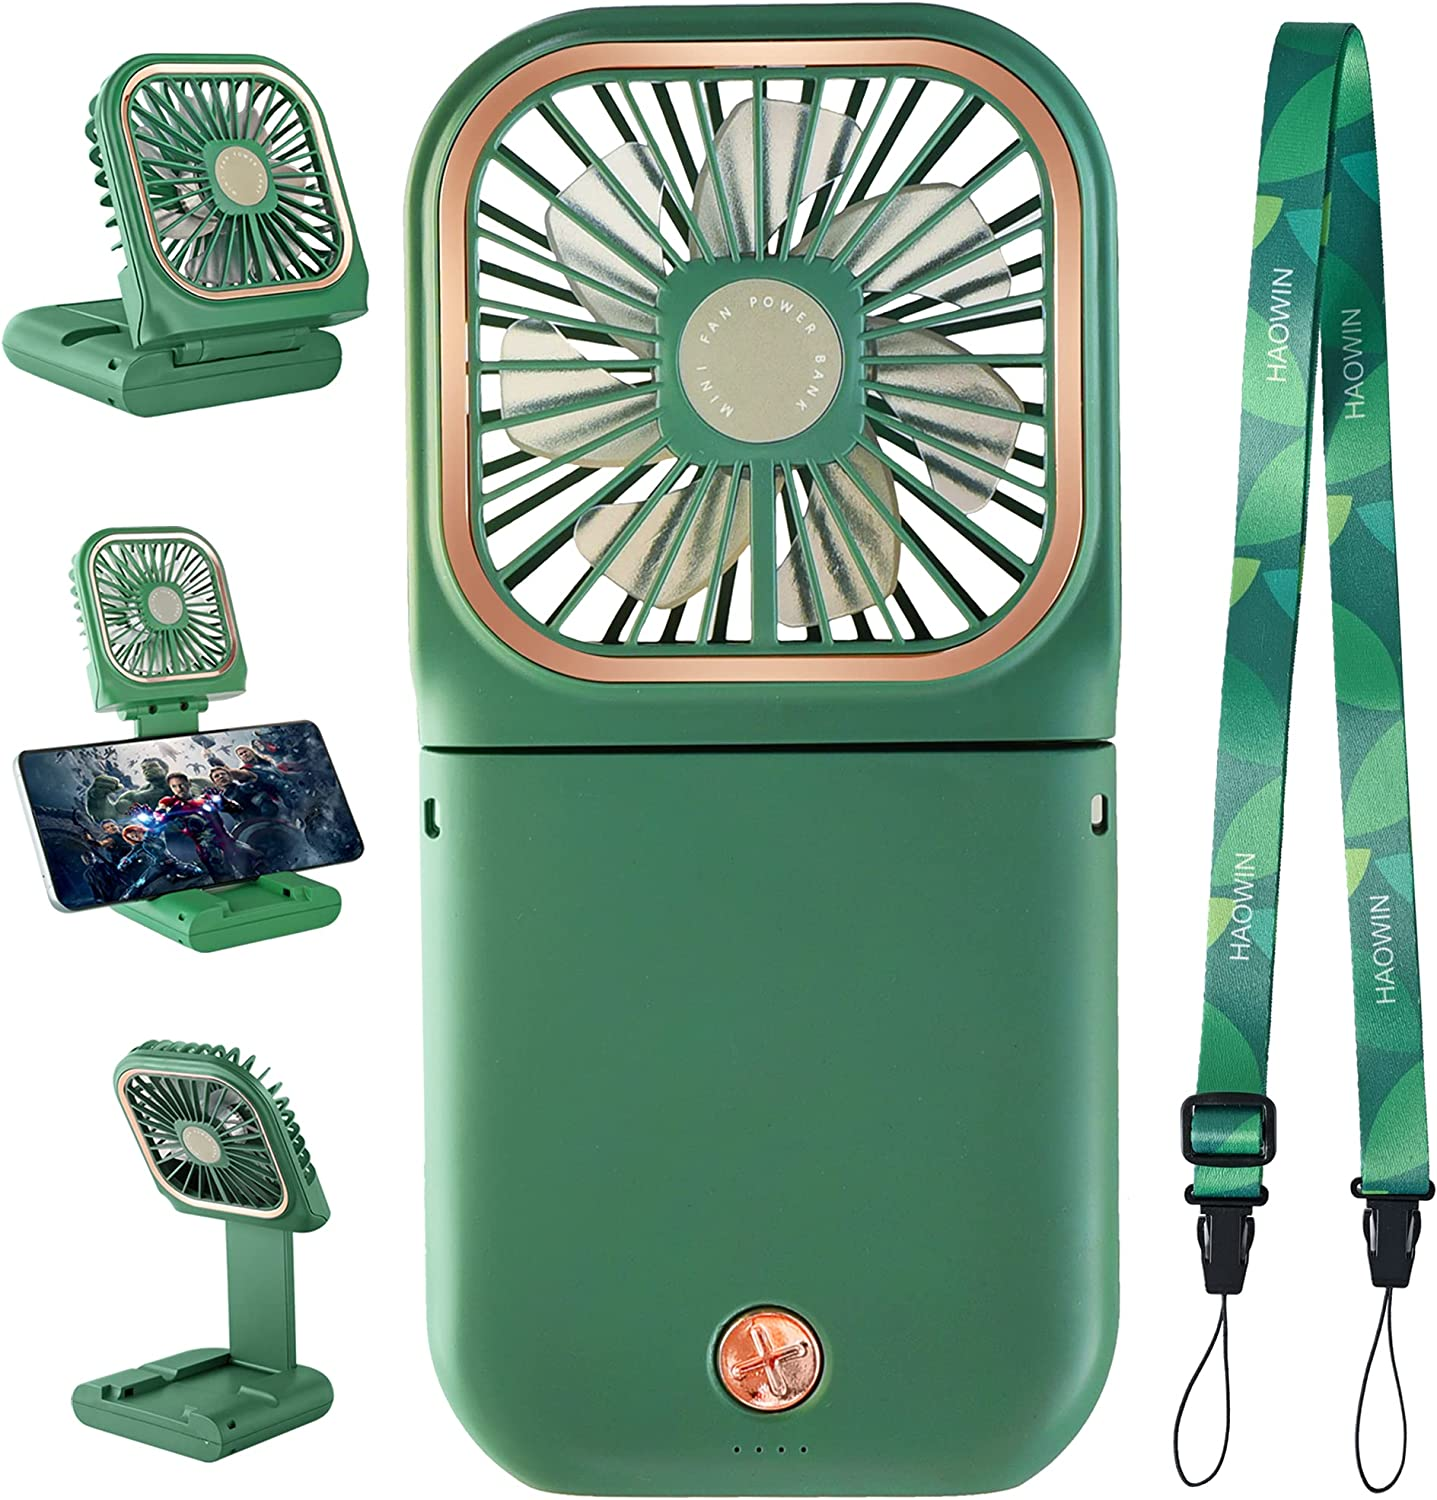 HAOWIN Portable Fan With 3000mAh Power Bank, 3-Speed Powerful Wind Mini Fan, Personal Fan For Table Stand, Hand Held, Neck Hanging,Waist Fastening, Cellphone Mount,Food Cooler,Work Up To 10 Hrs, Green